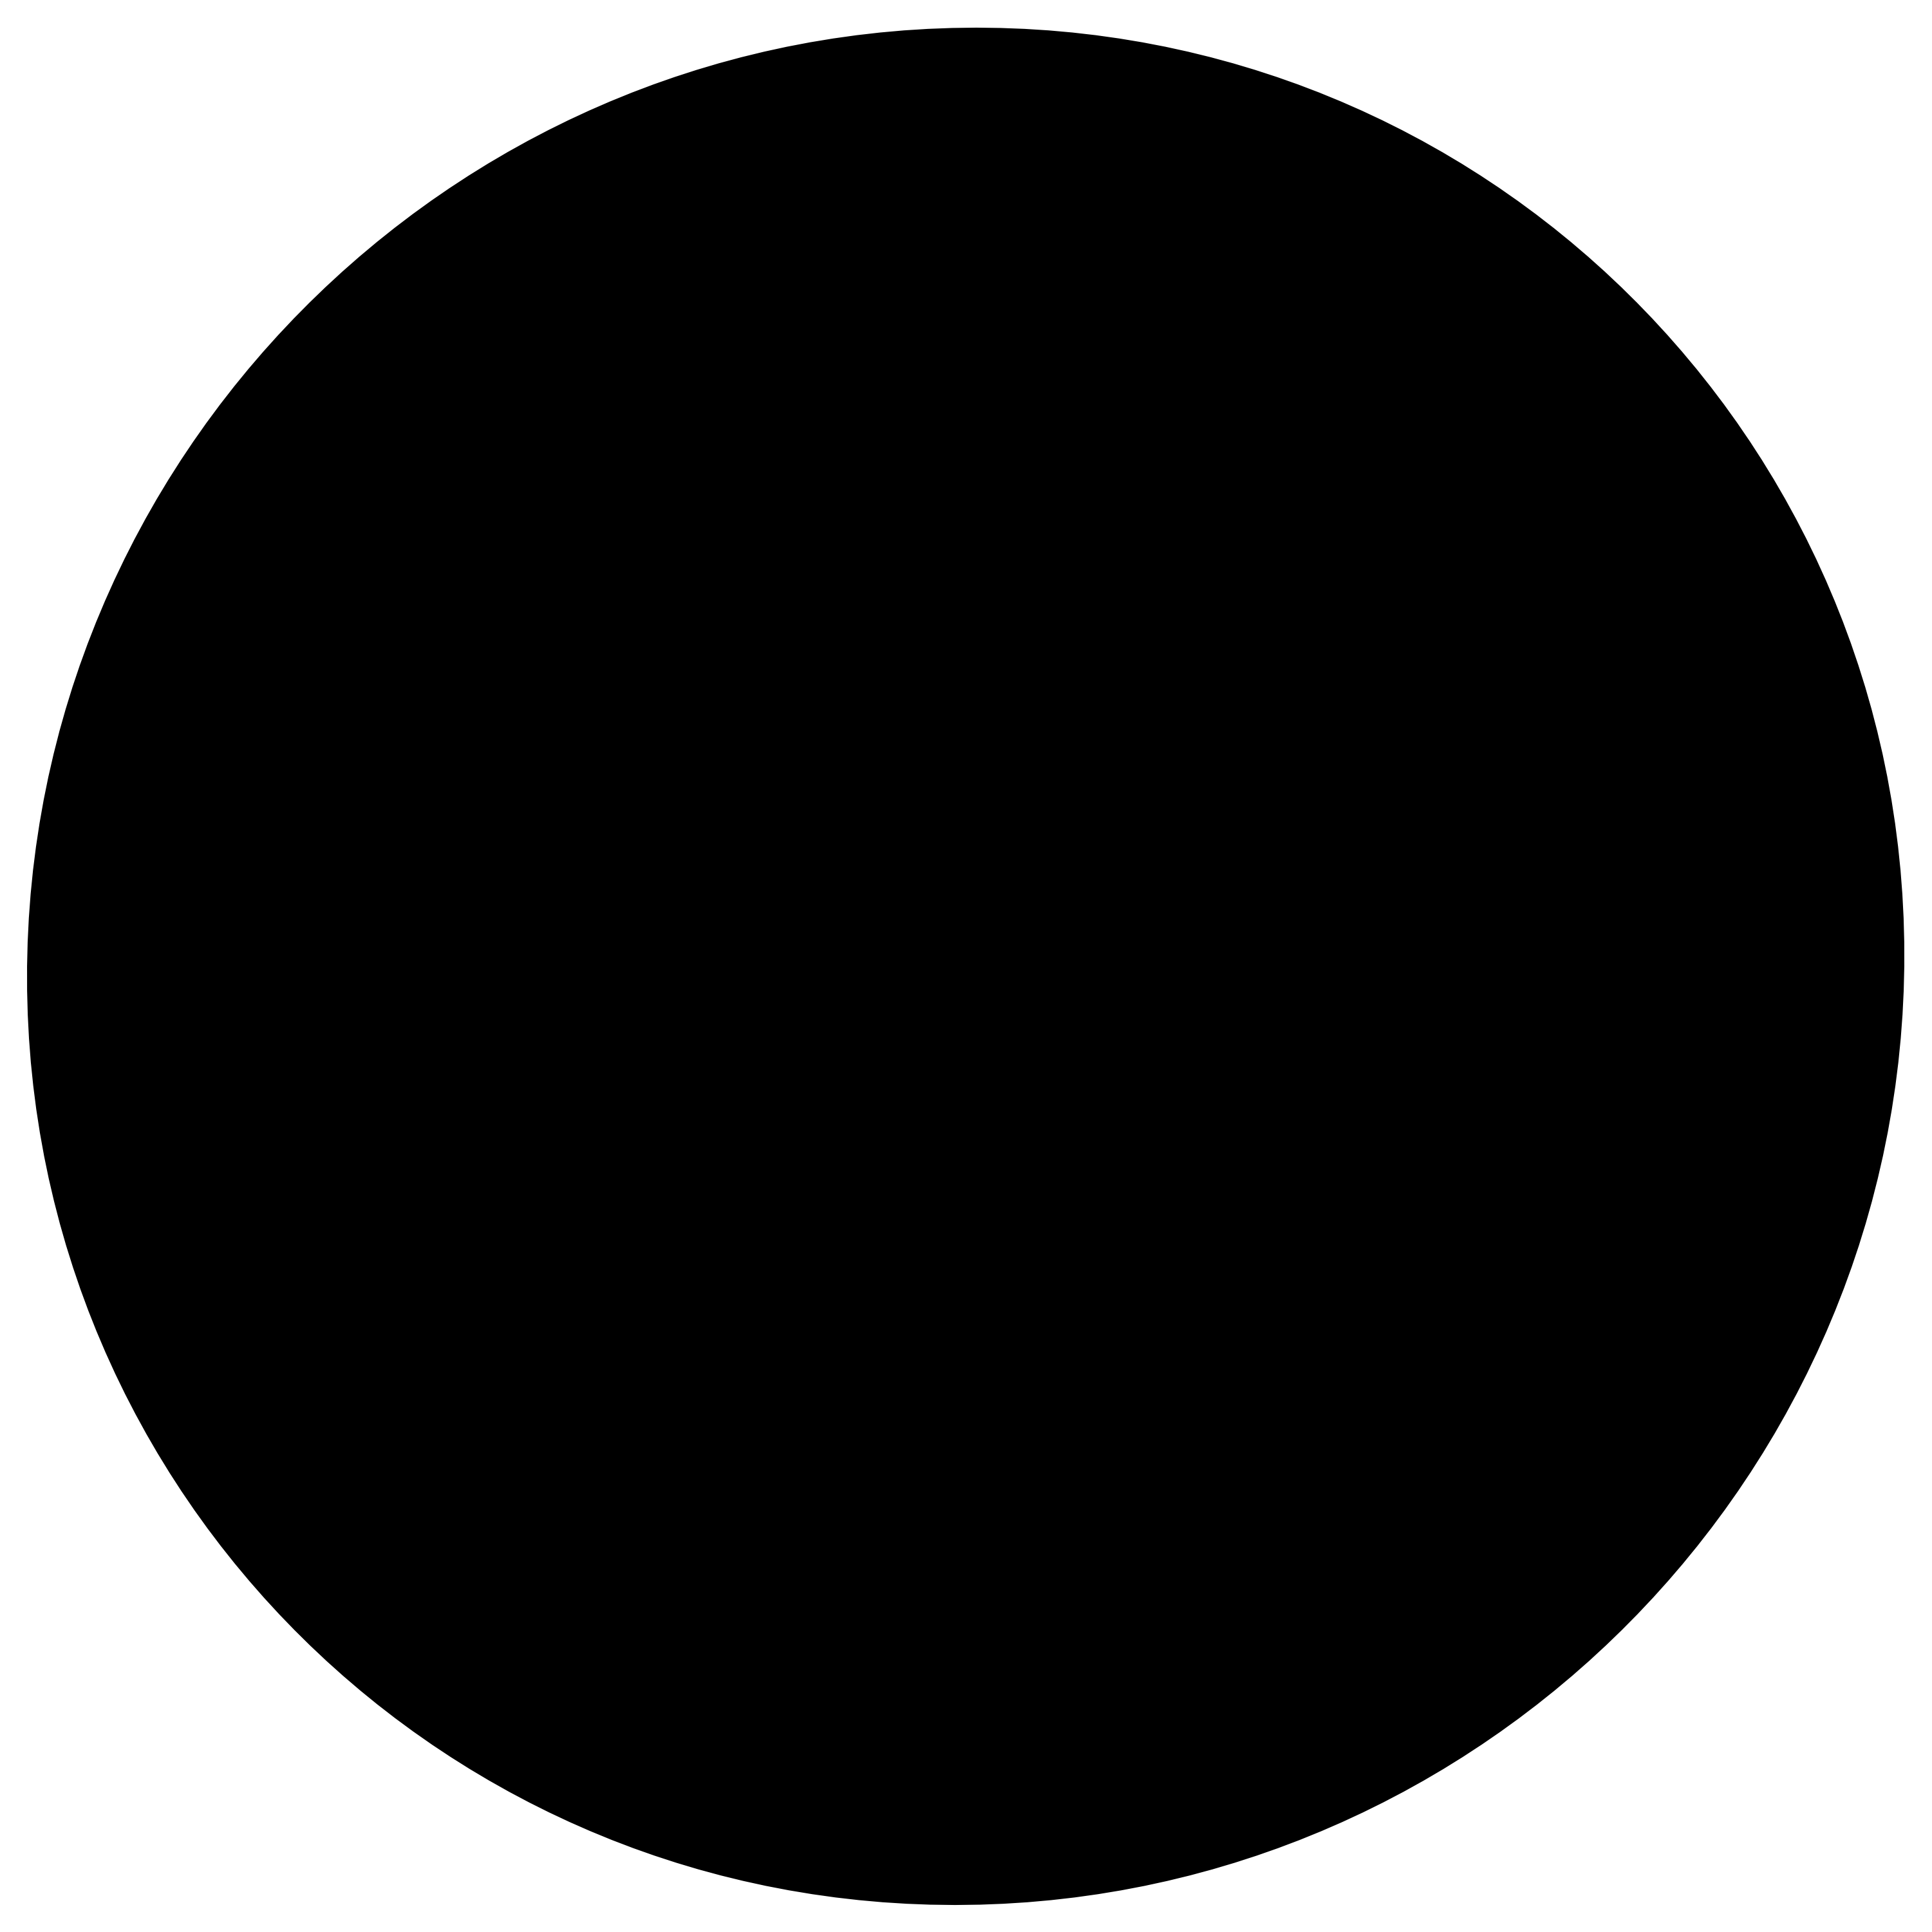 Circle Transparent Picture 15300